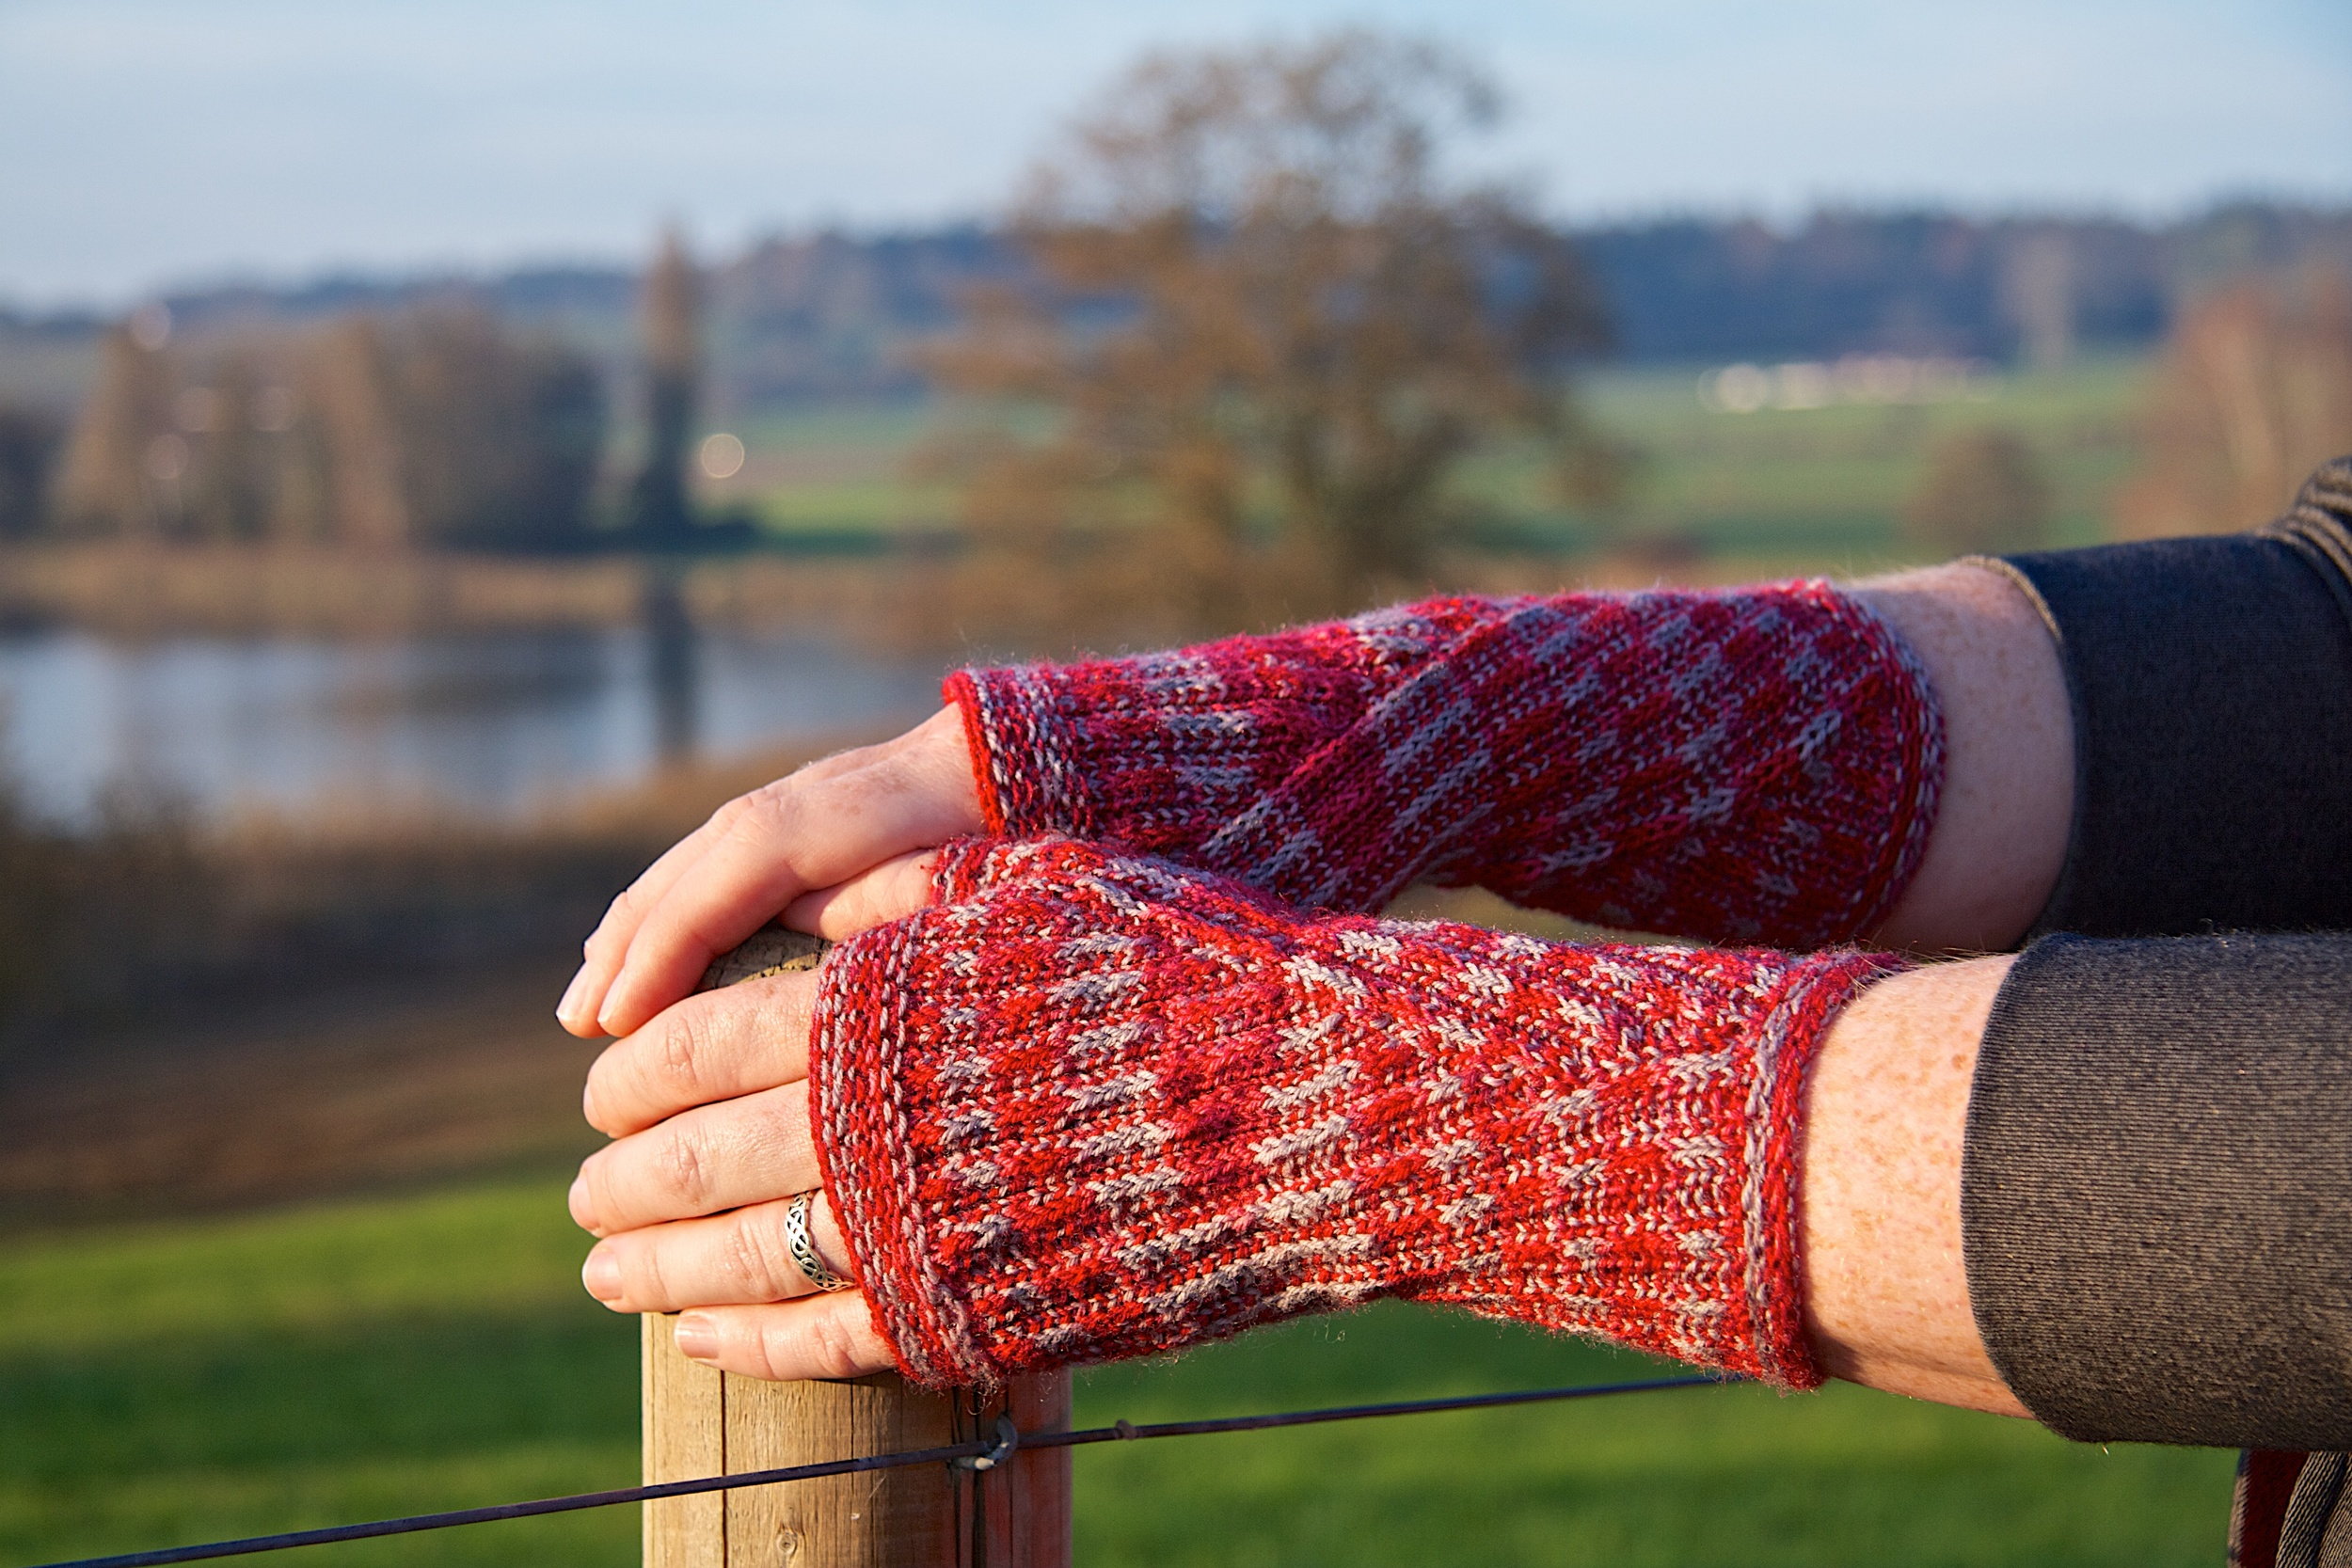 Wraparound mitts    make the most of those beautiful variegated sock yarns with slip-stitch patterning and a clever, fun construction.   Buy now .  (Sized from child to adult)